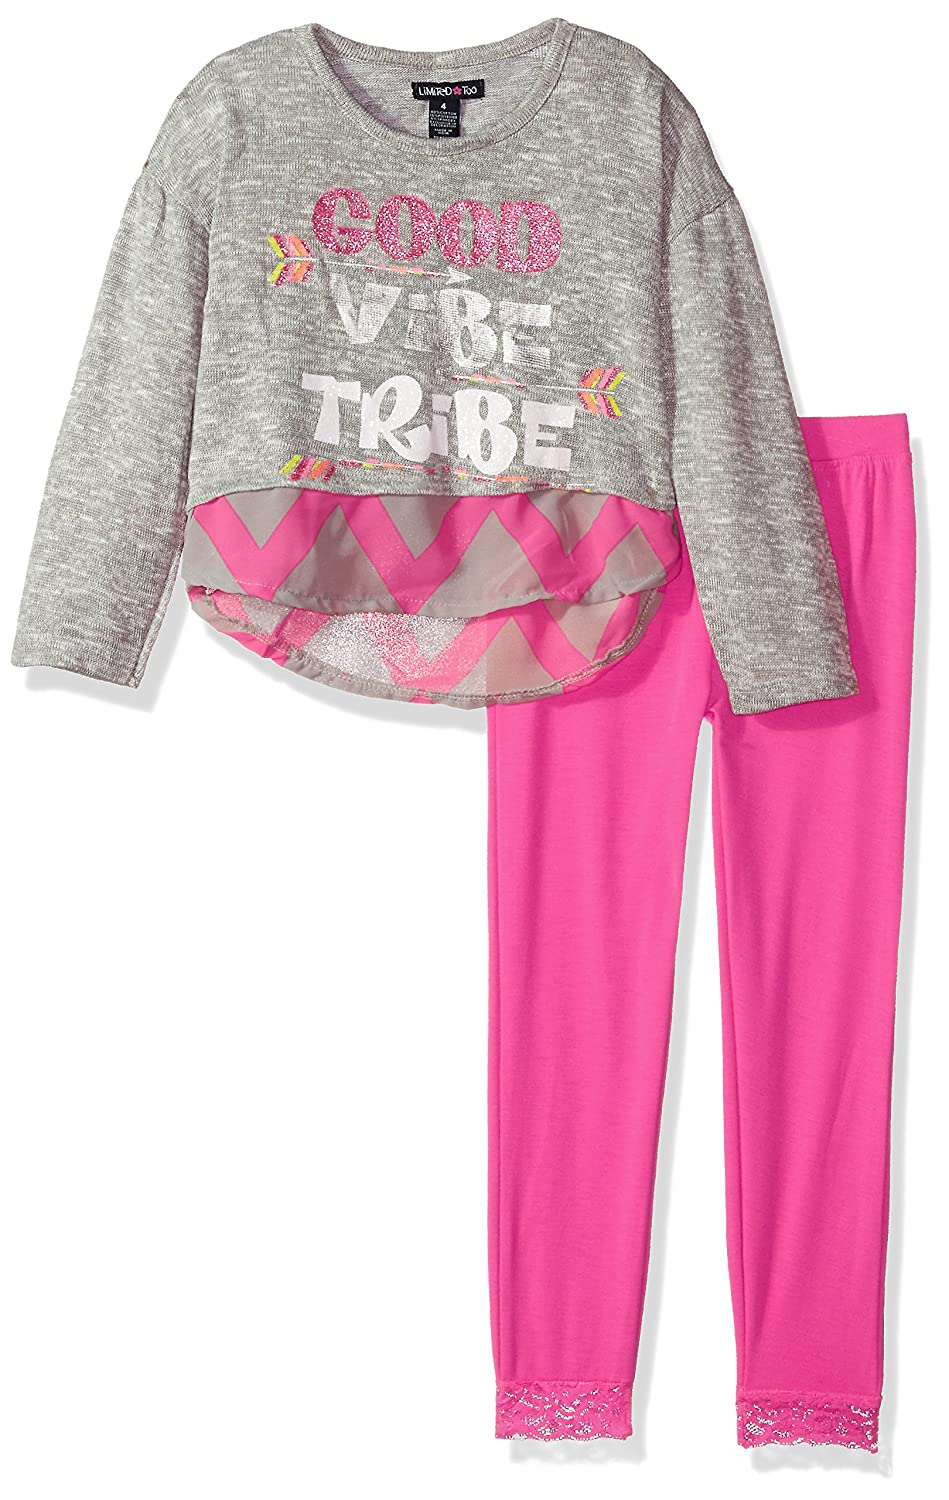 More Styles Available Limited Too Girls Knit Top and Legging Set